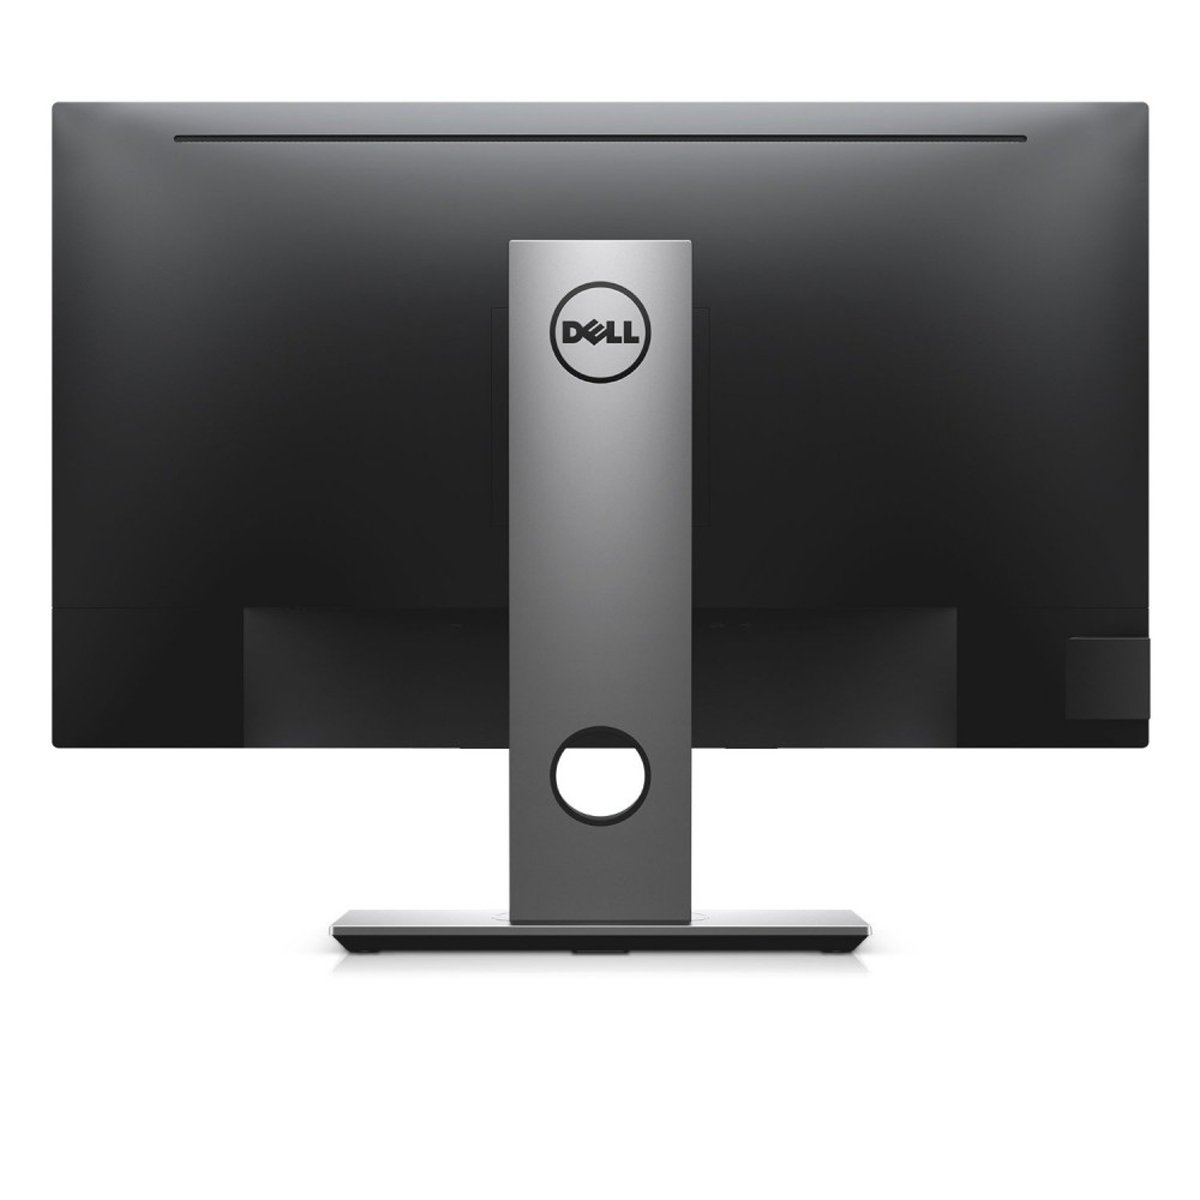 Dell 24 Amp Monitor P2419h Solidbox Empower Yourself